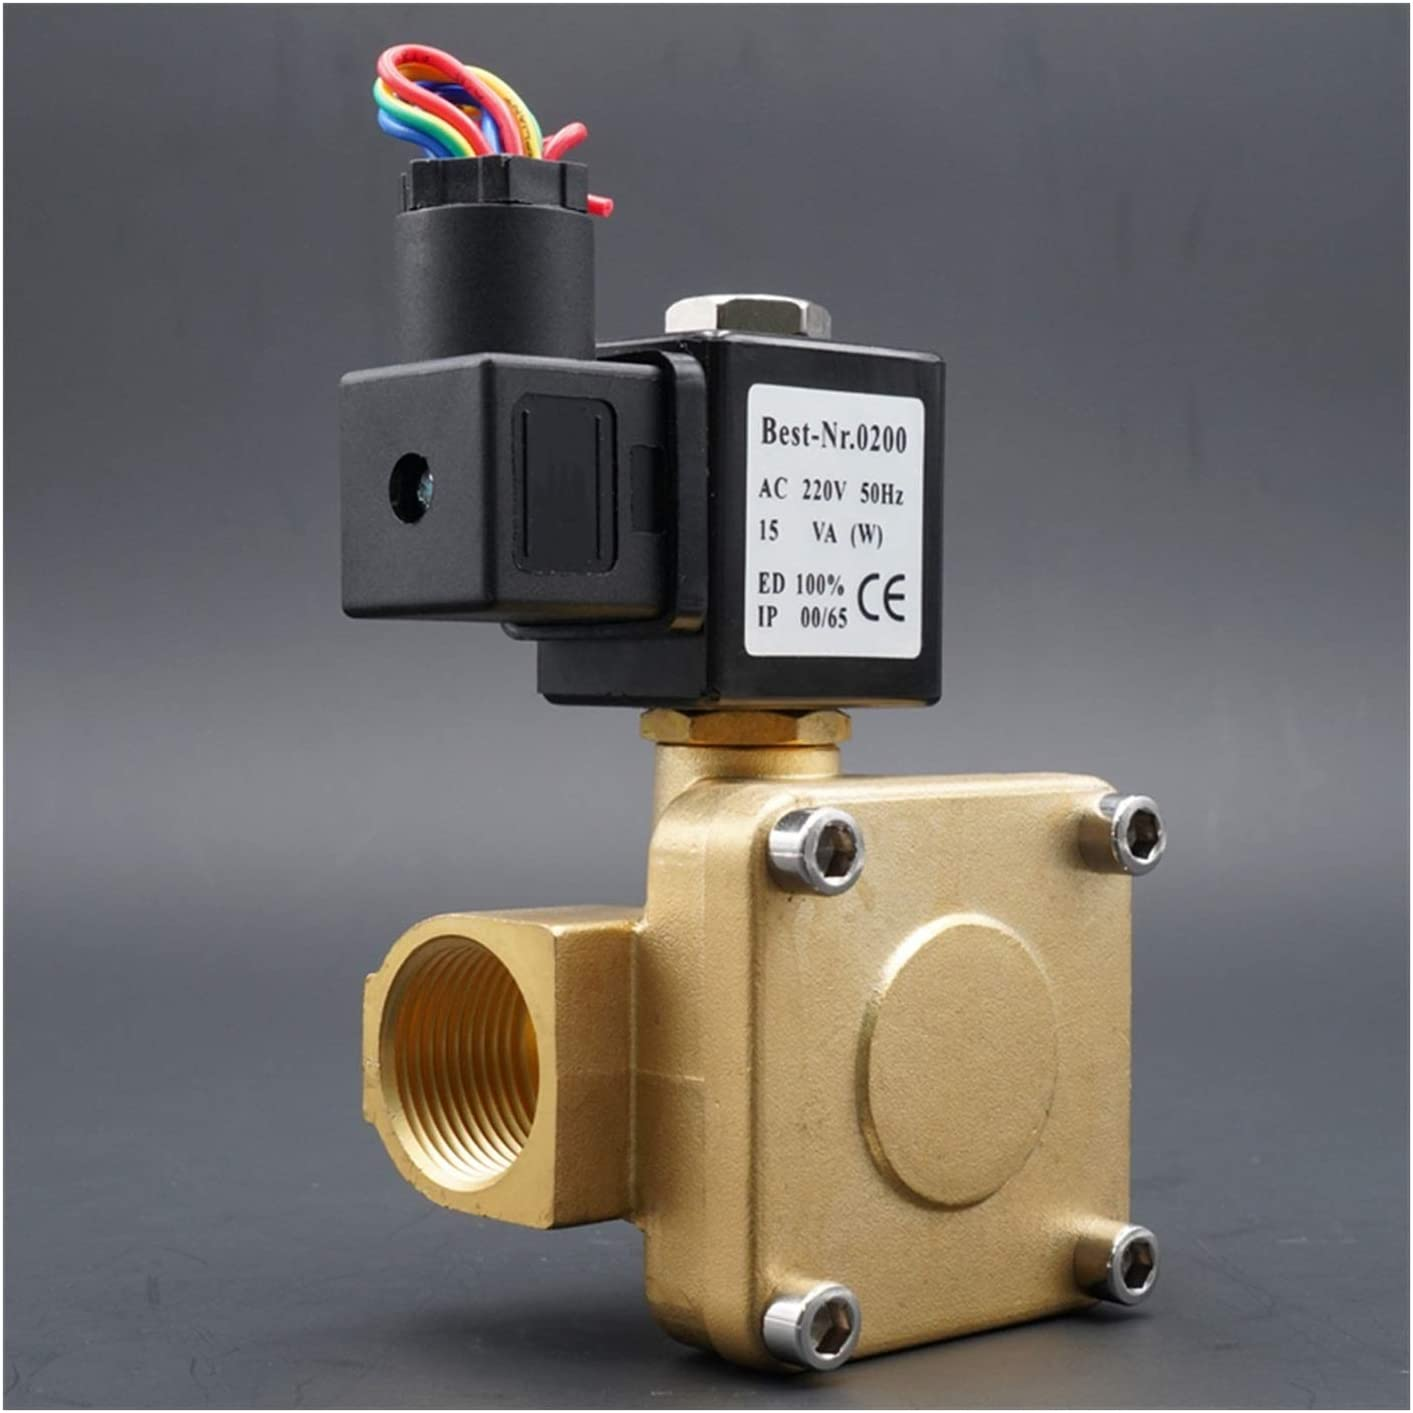 DINGGUANGHE Solenoid Time Max 55% OFF sale Valve AC220V Water Clo Normally DC24V